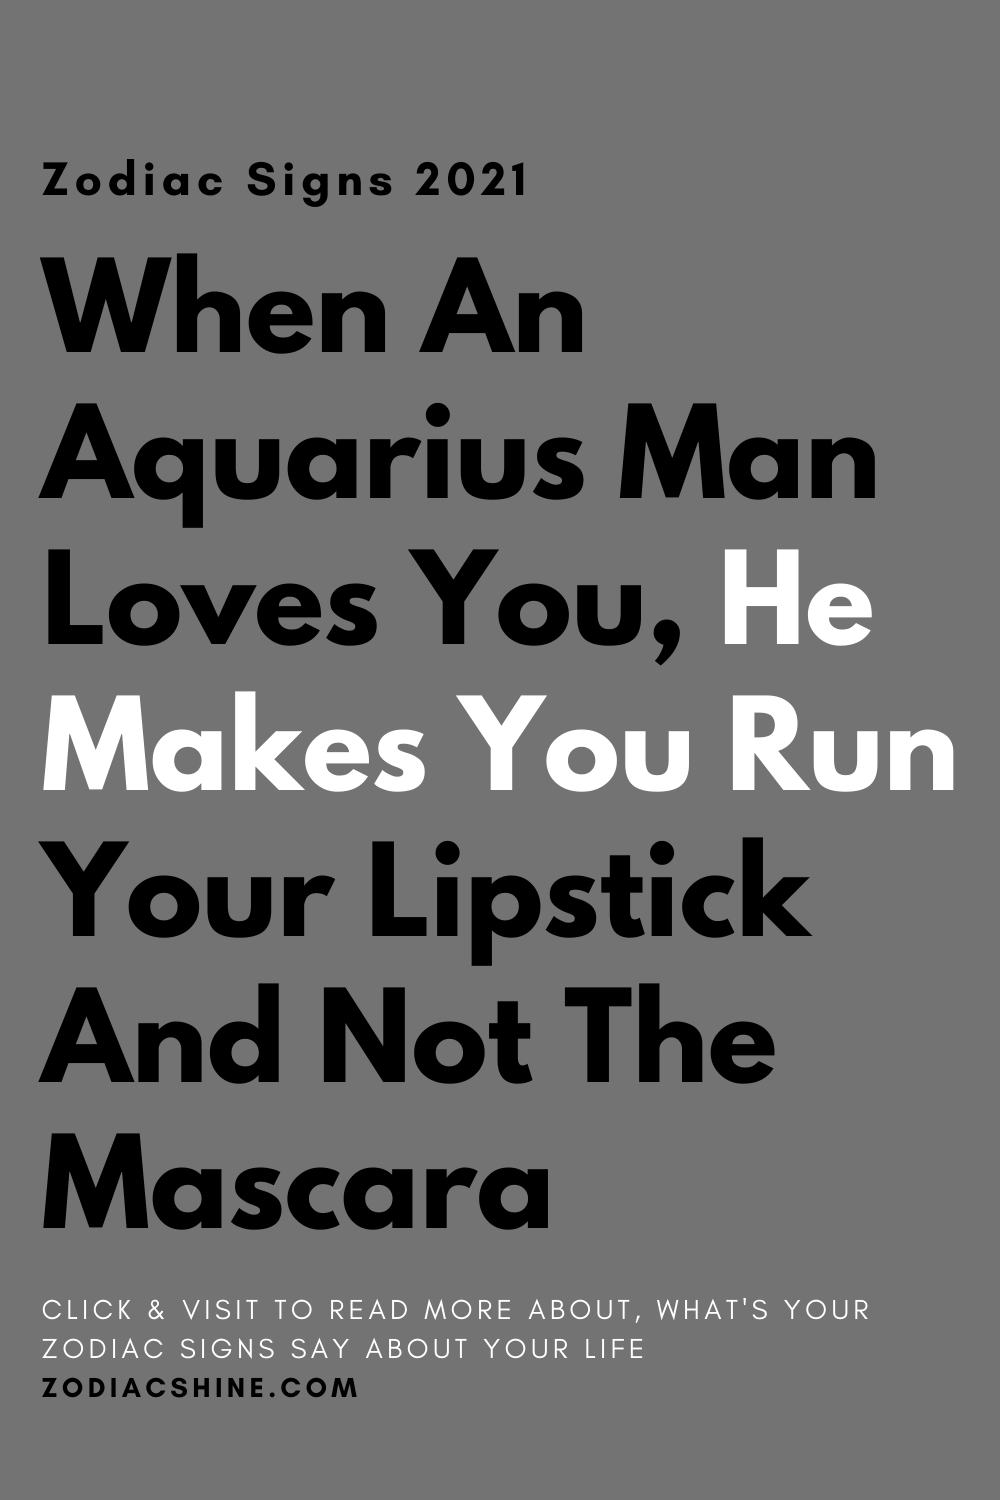 When An Aquarius Man Loves You, He Makes You Run Your Lipstick And Not The Mascara